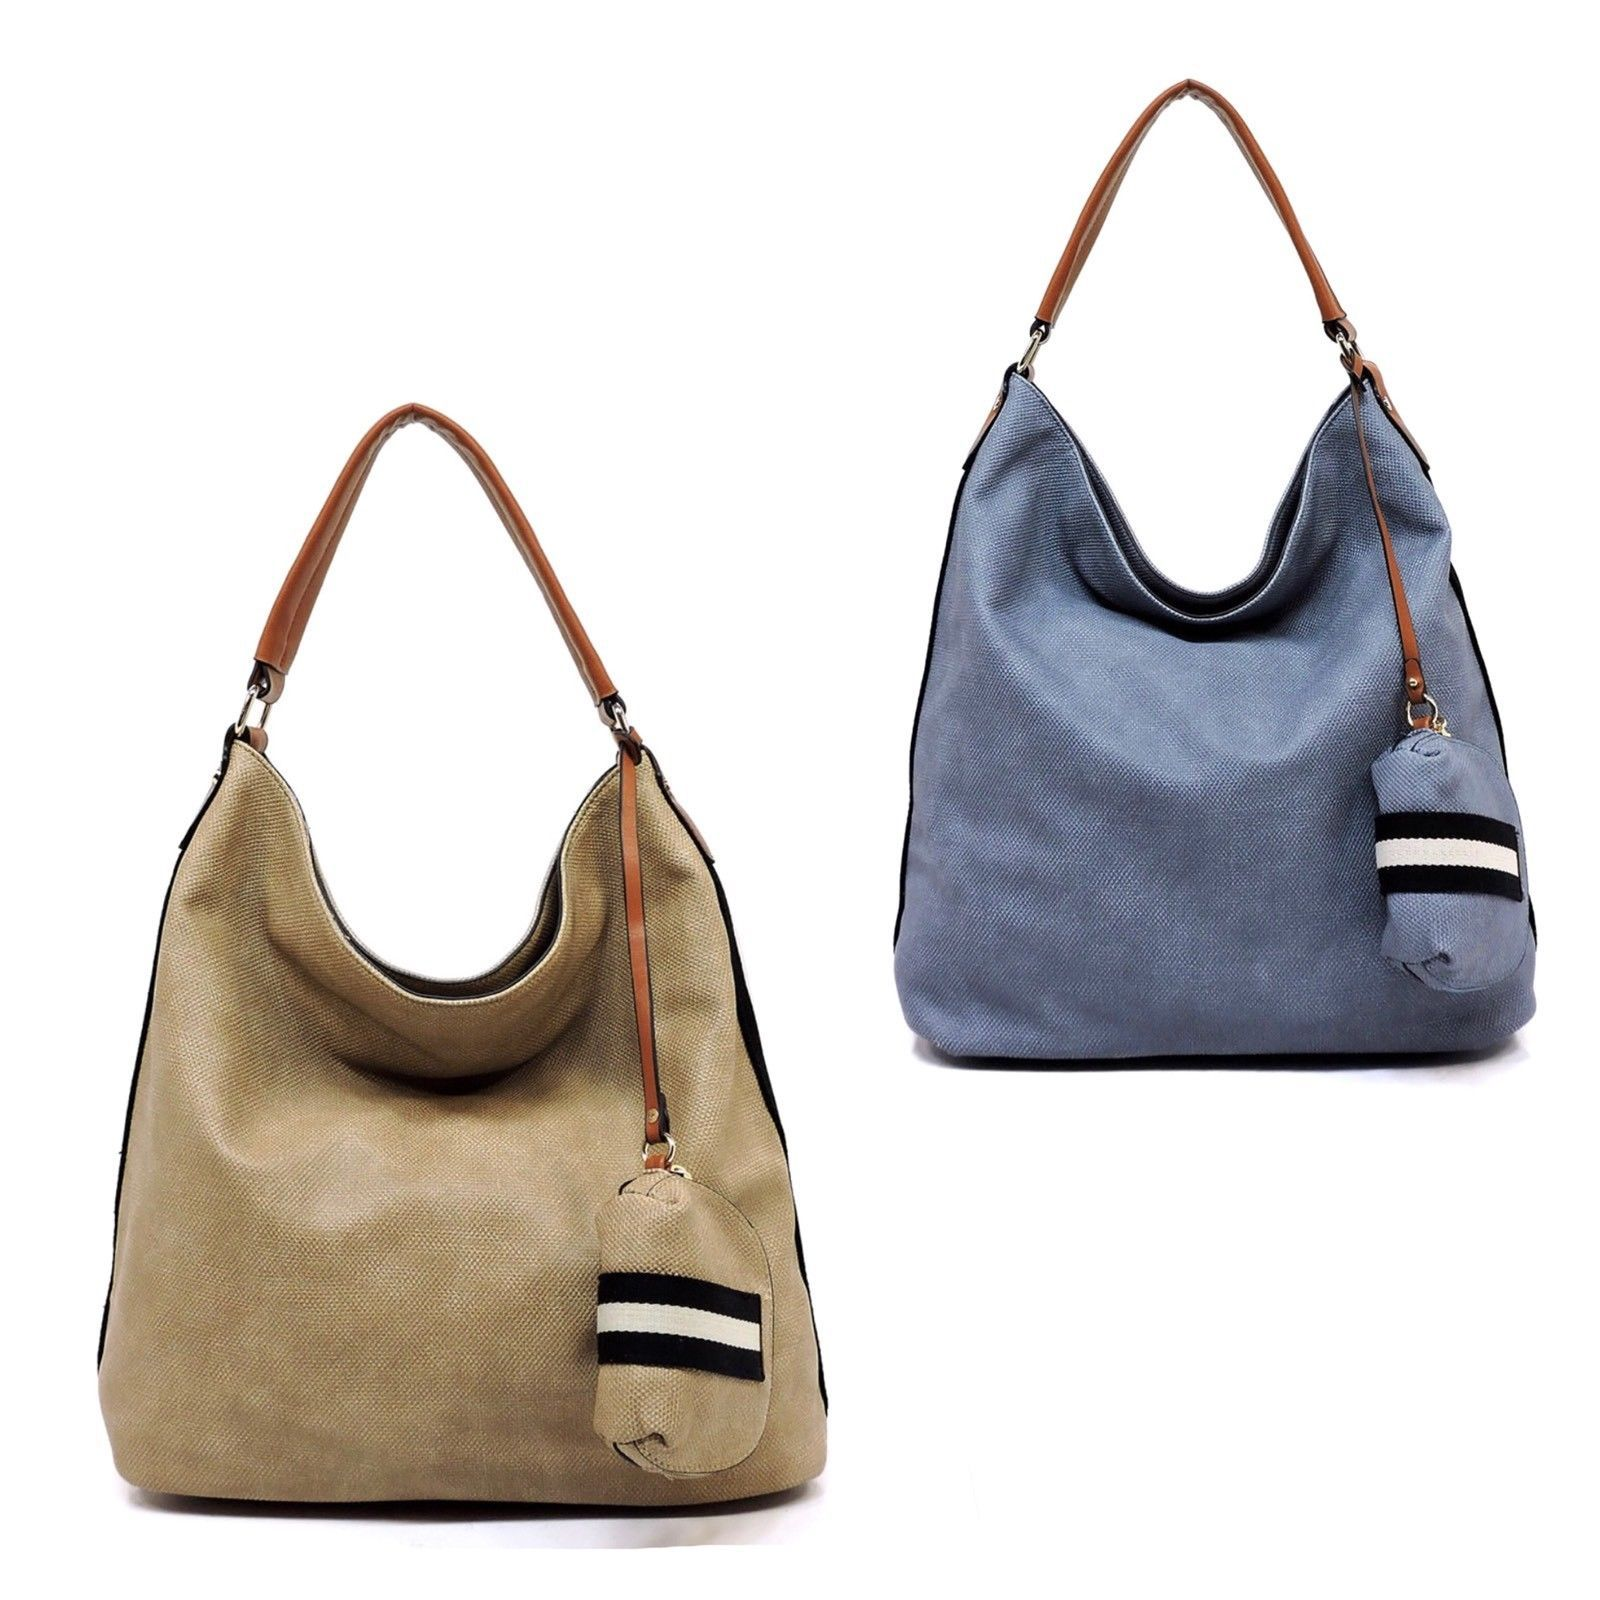 New Side Stripe Denim Textured Vegan Leather Hobo Handbag Shoulder Bag